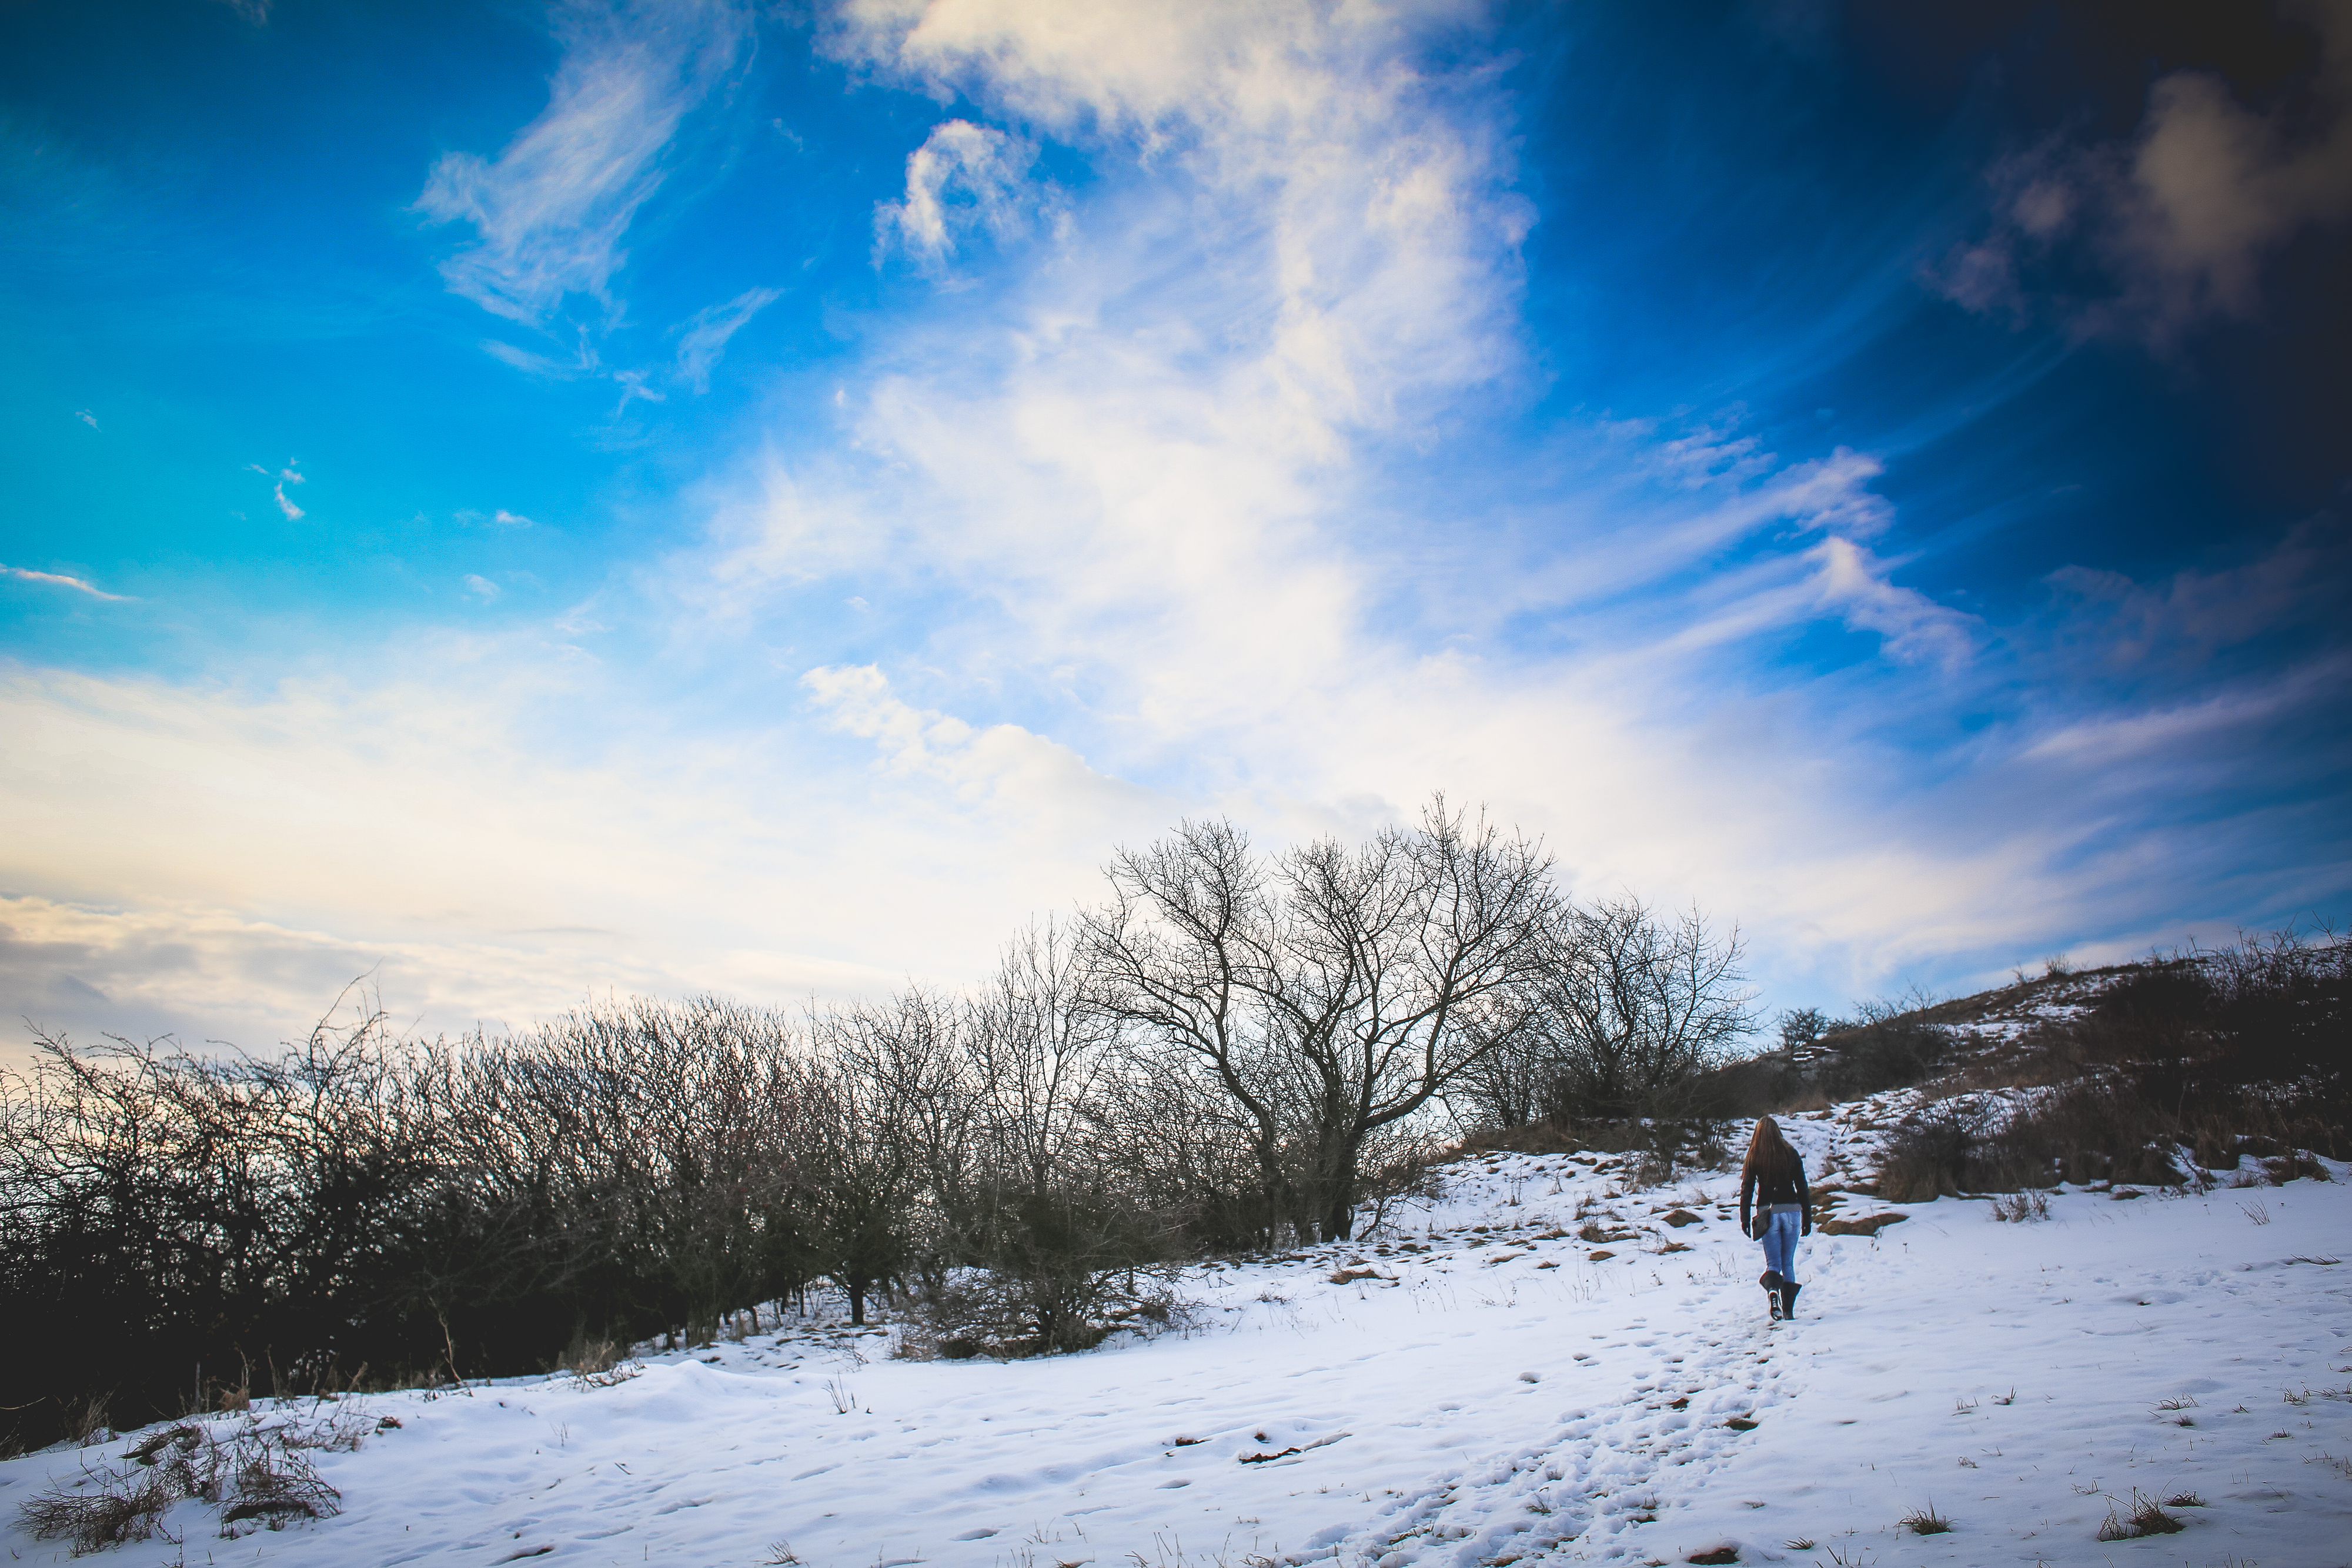 Download Girl Hiking on Snowy Hill FREE Stock Photo